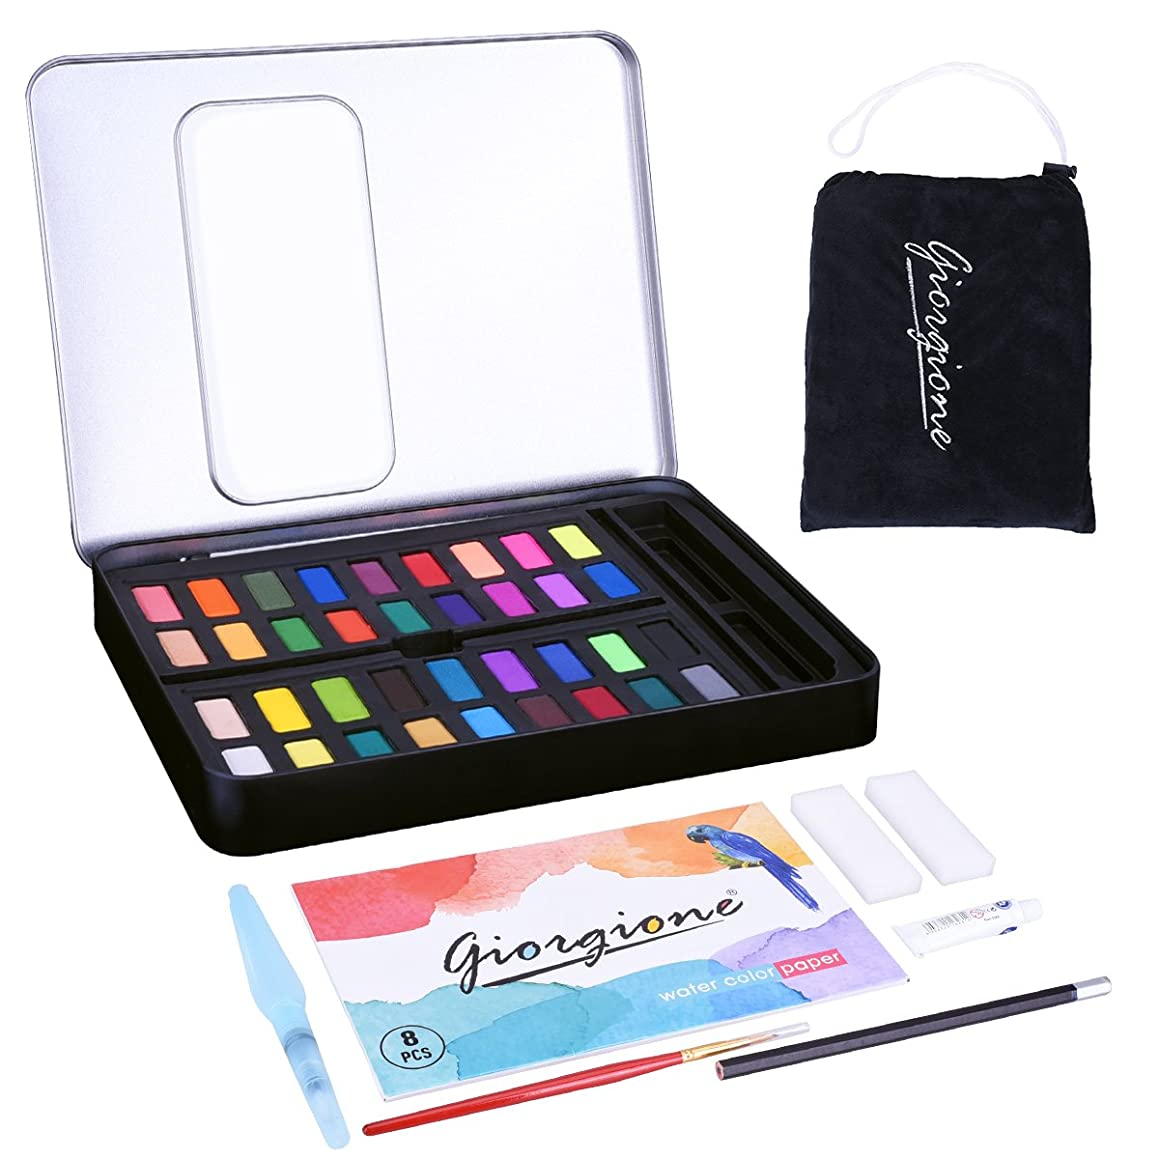 LegendTech 36 Assorted Colors Watercolor Paints with Tin Case Non-toxic Pigment Coloring Painting Set Include Painting Brush White Paint Tube Absorbent Sponge Water Color Paper